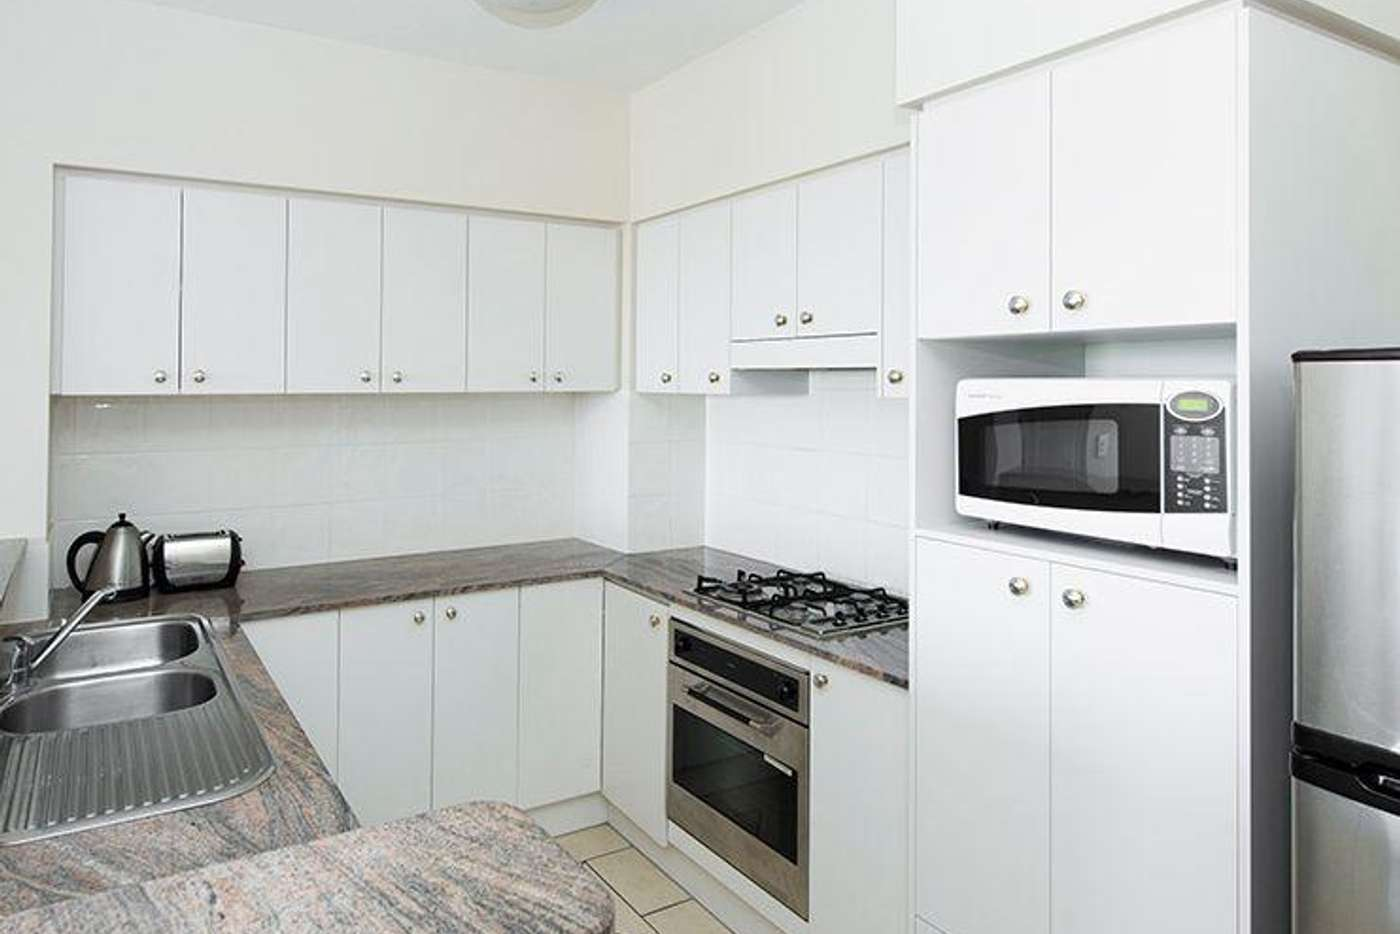 Seventh view of Homely apartment listing, 5 Chasely Street, Auchenflower QLD 4066